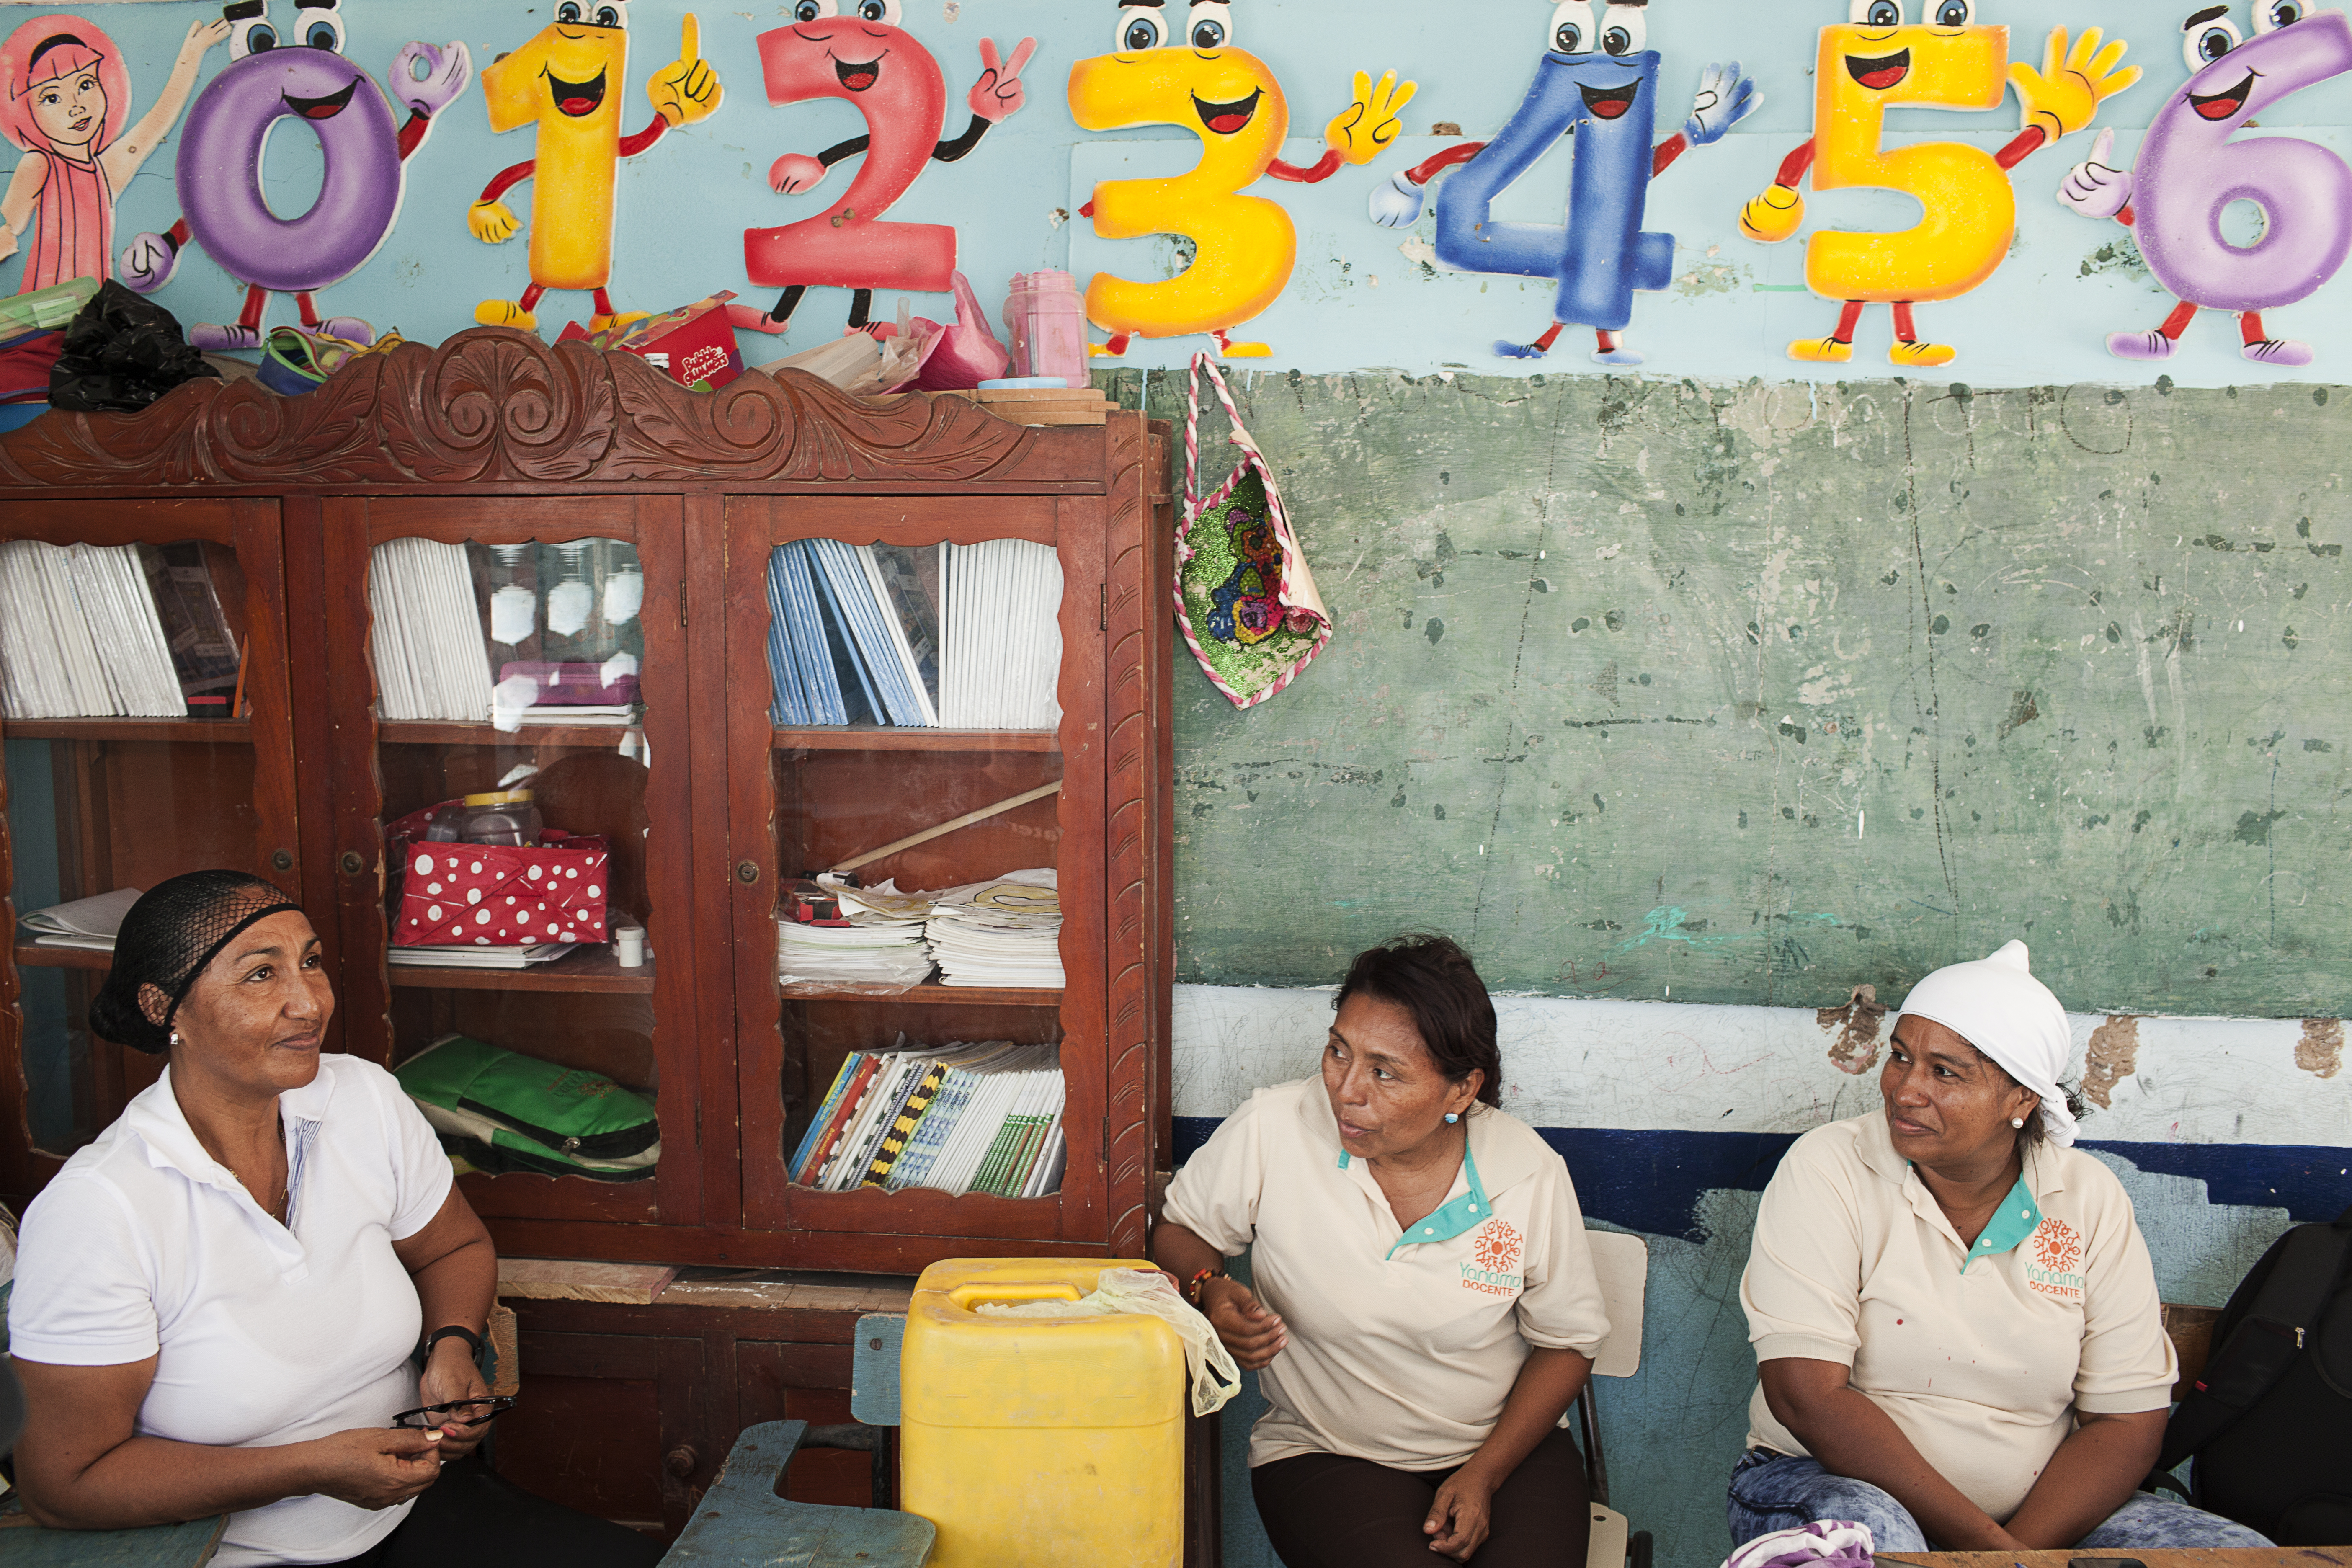 (L-R) Laila Moscote Epinayu, 50, Solmaris Rodriguez, 41 and Germina Rodriguez Iguaran, 43, all teachers at Totcomana school, Totcomana, Manaure, La Guajira, Colombia. March 2017.